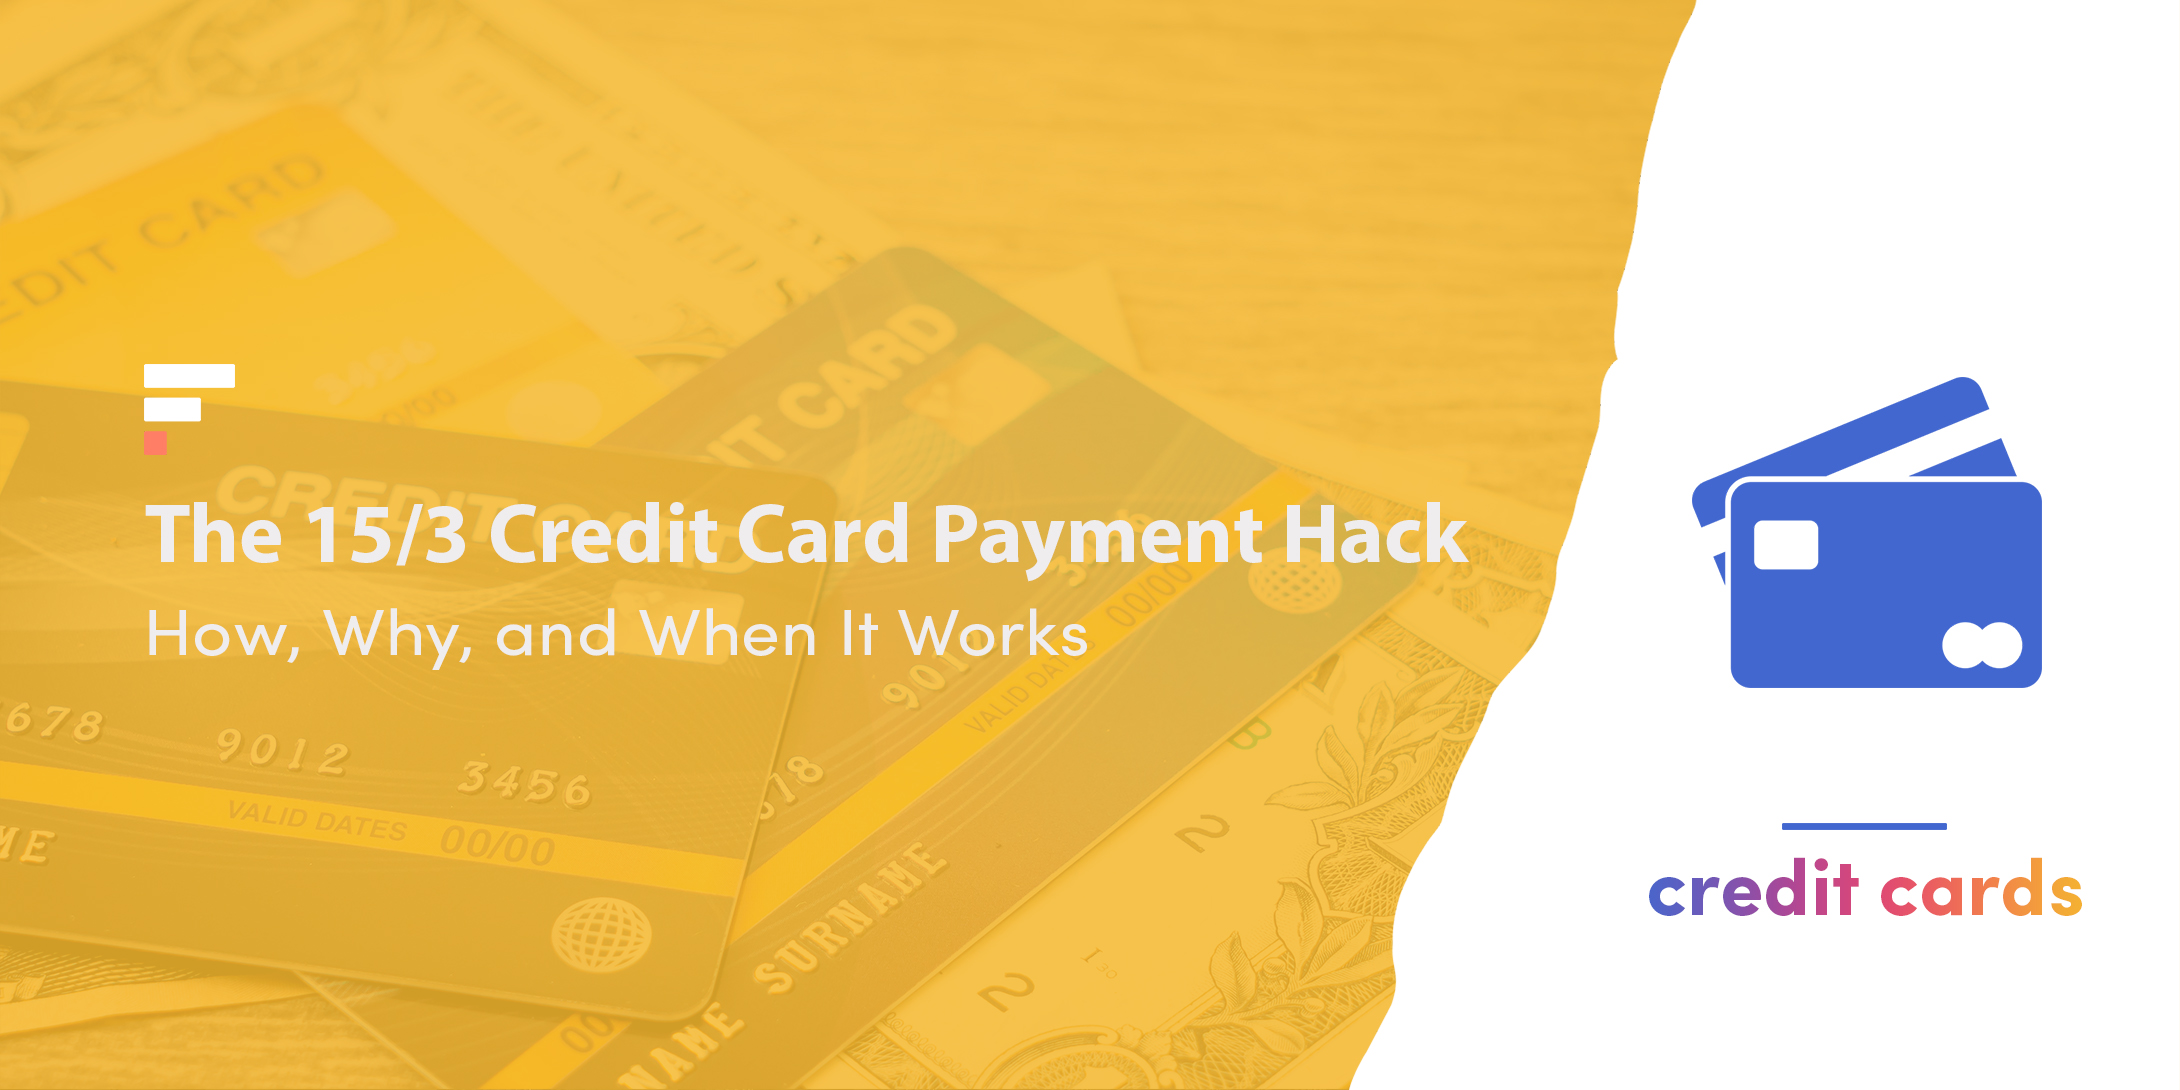 The 15/3 Credit Card Payment Hack: How, Why, and When It Works